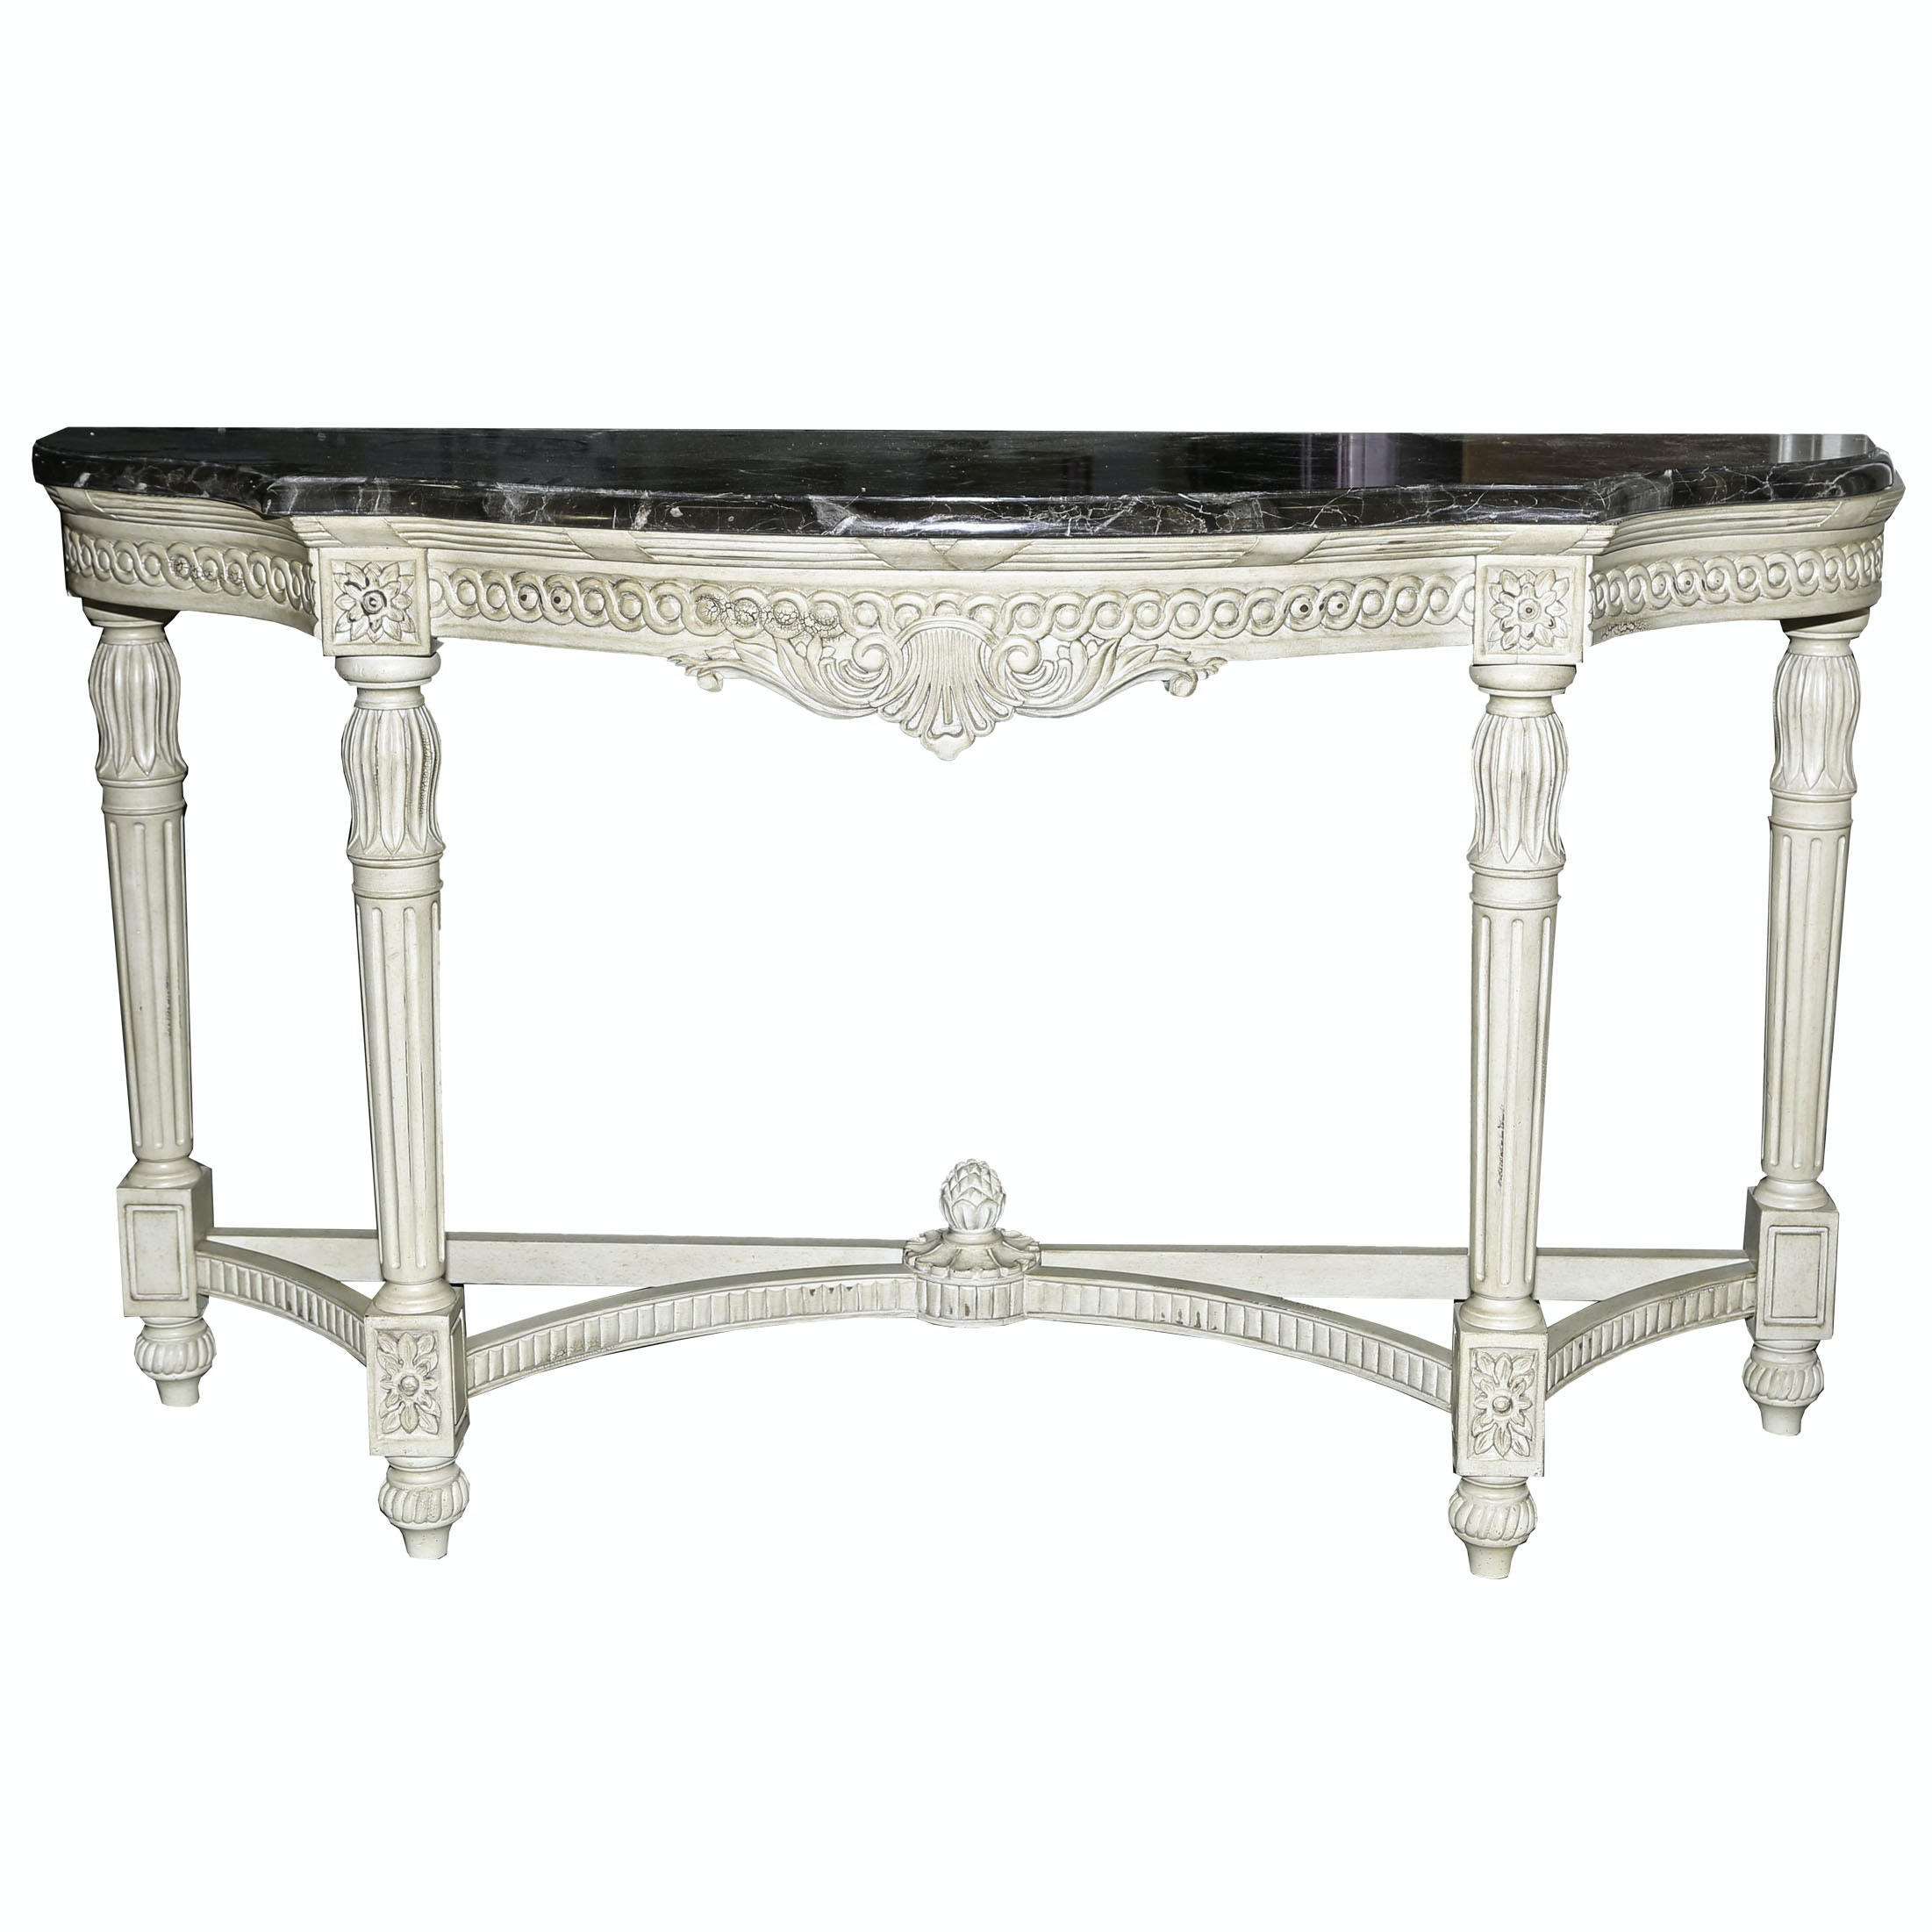 Neoclassical Inspired Marble Top Console Table